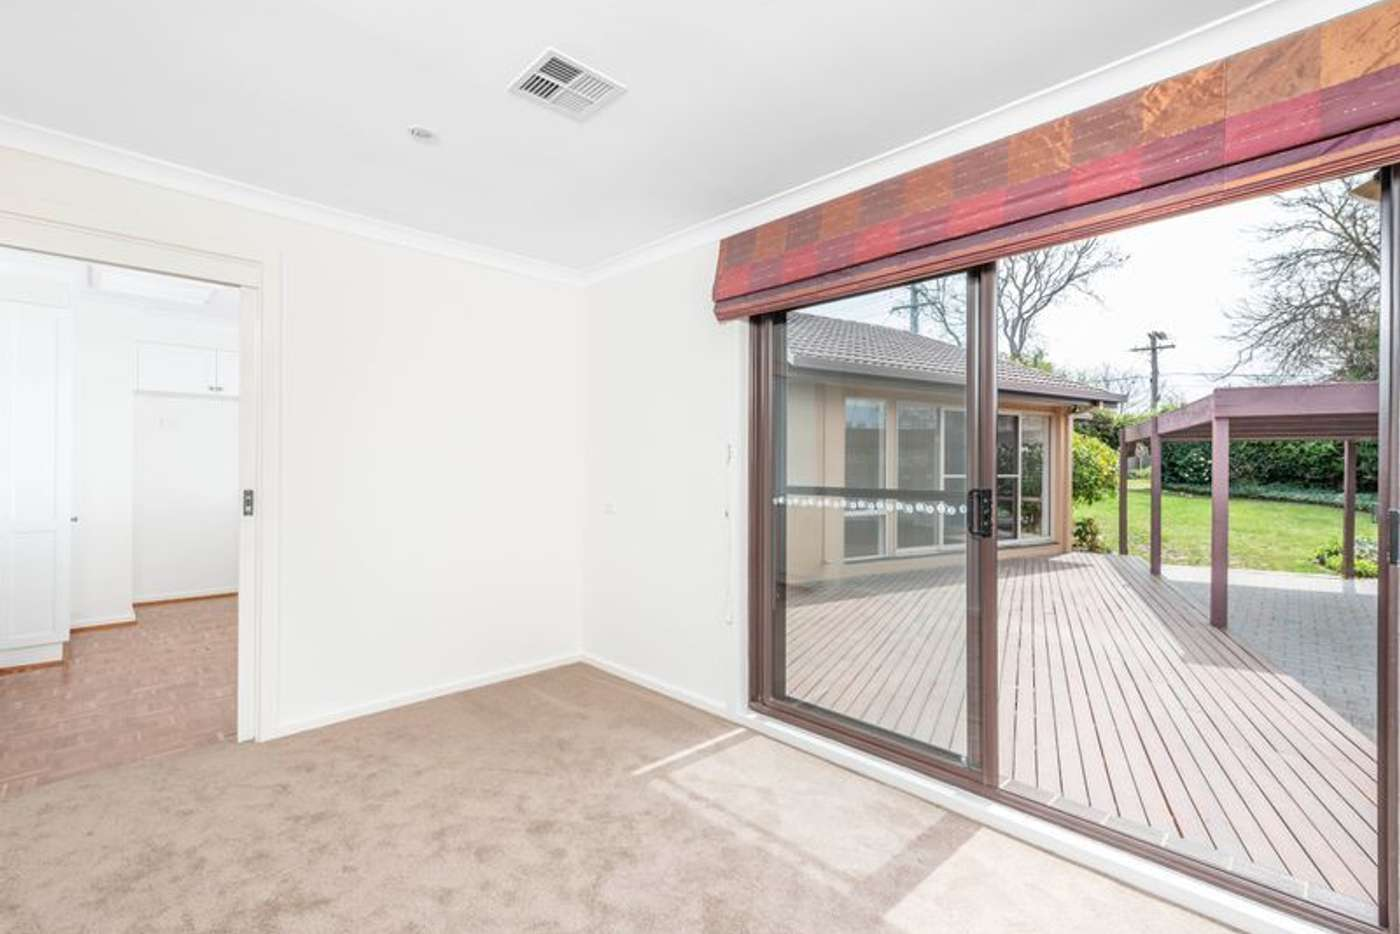 Sixth view of Homely house listing, 58 Dunstan Street, Curtin ACT 2605